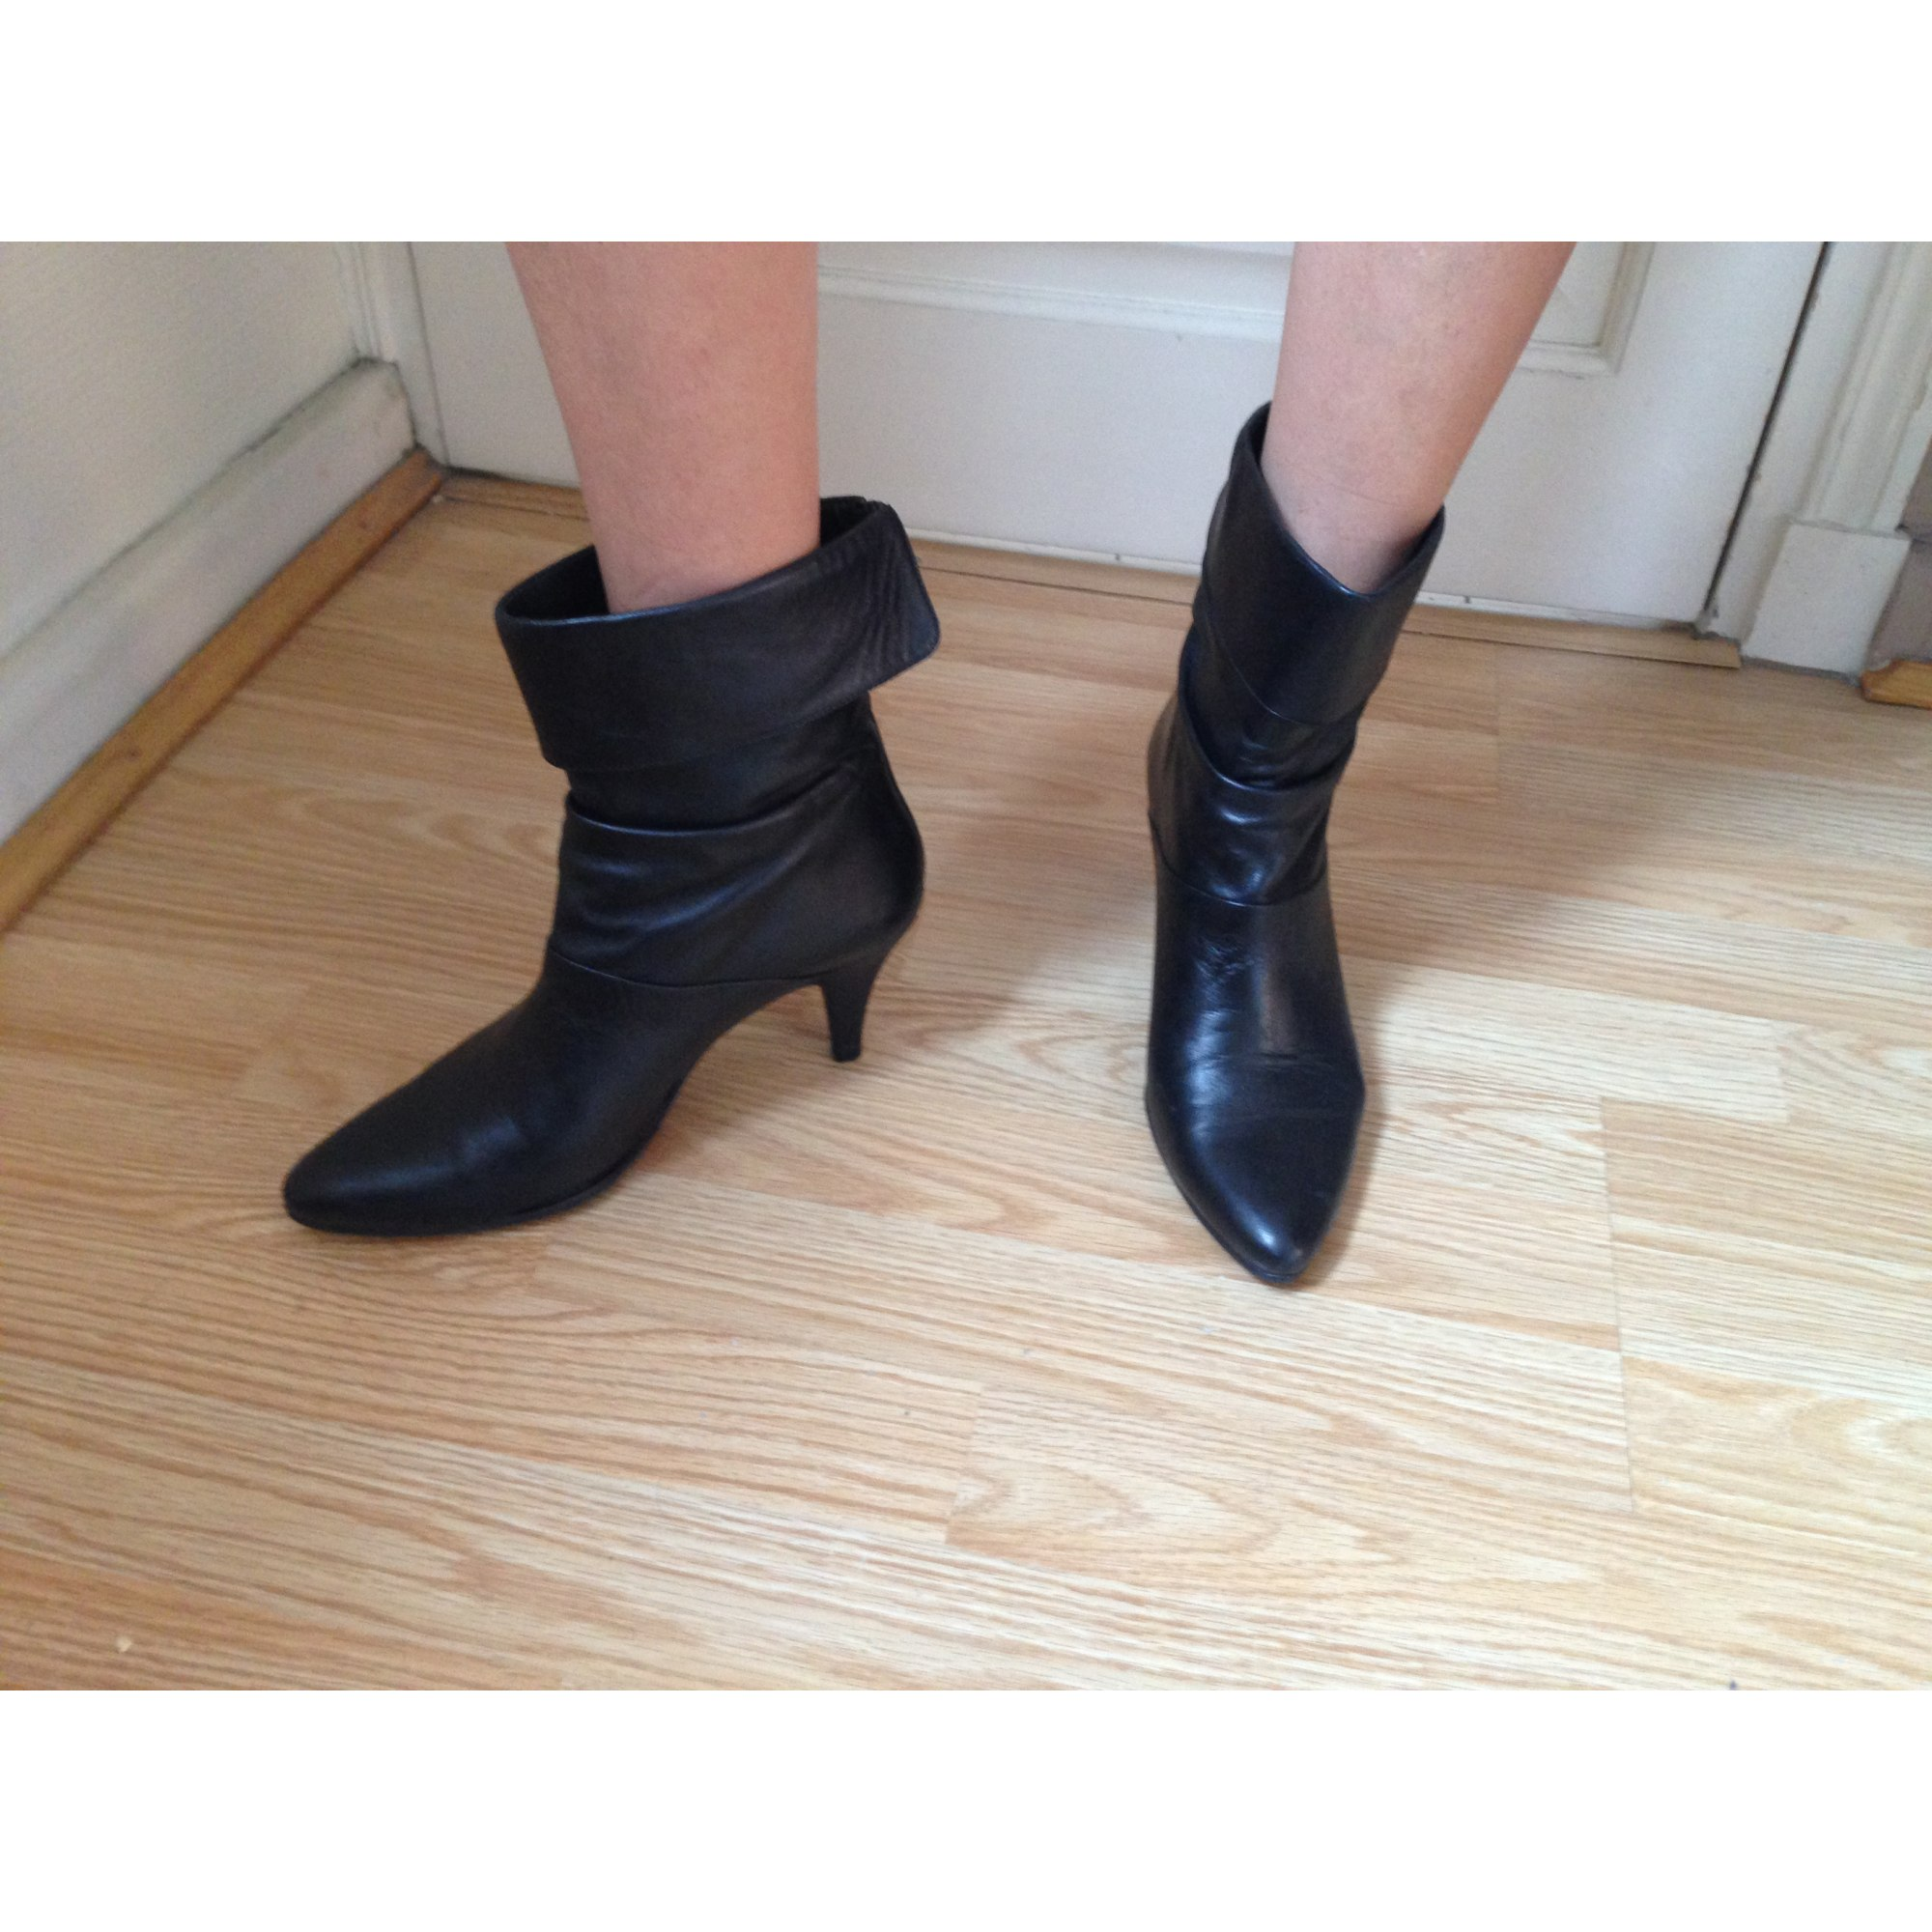 Bottines & low boots à talons JAIME MASCARO cuir noir 37